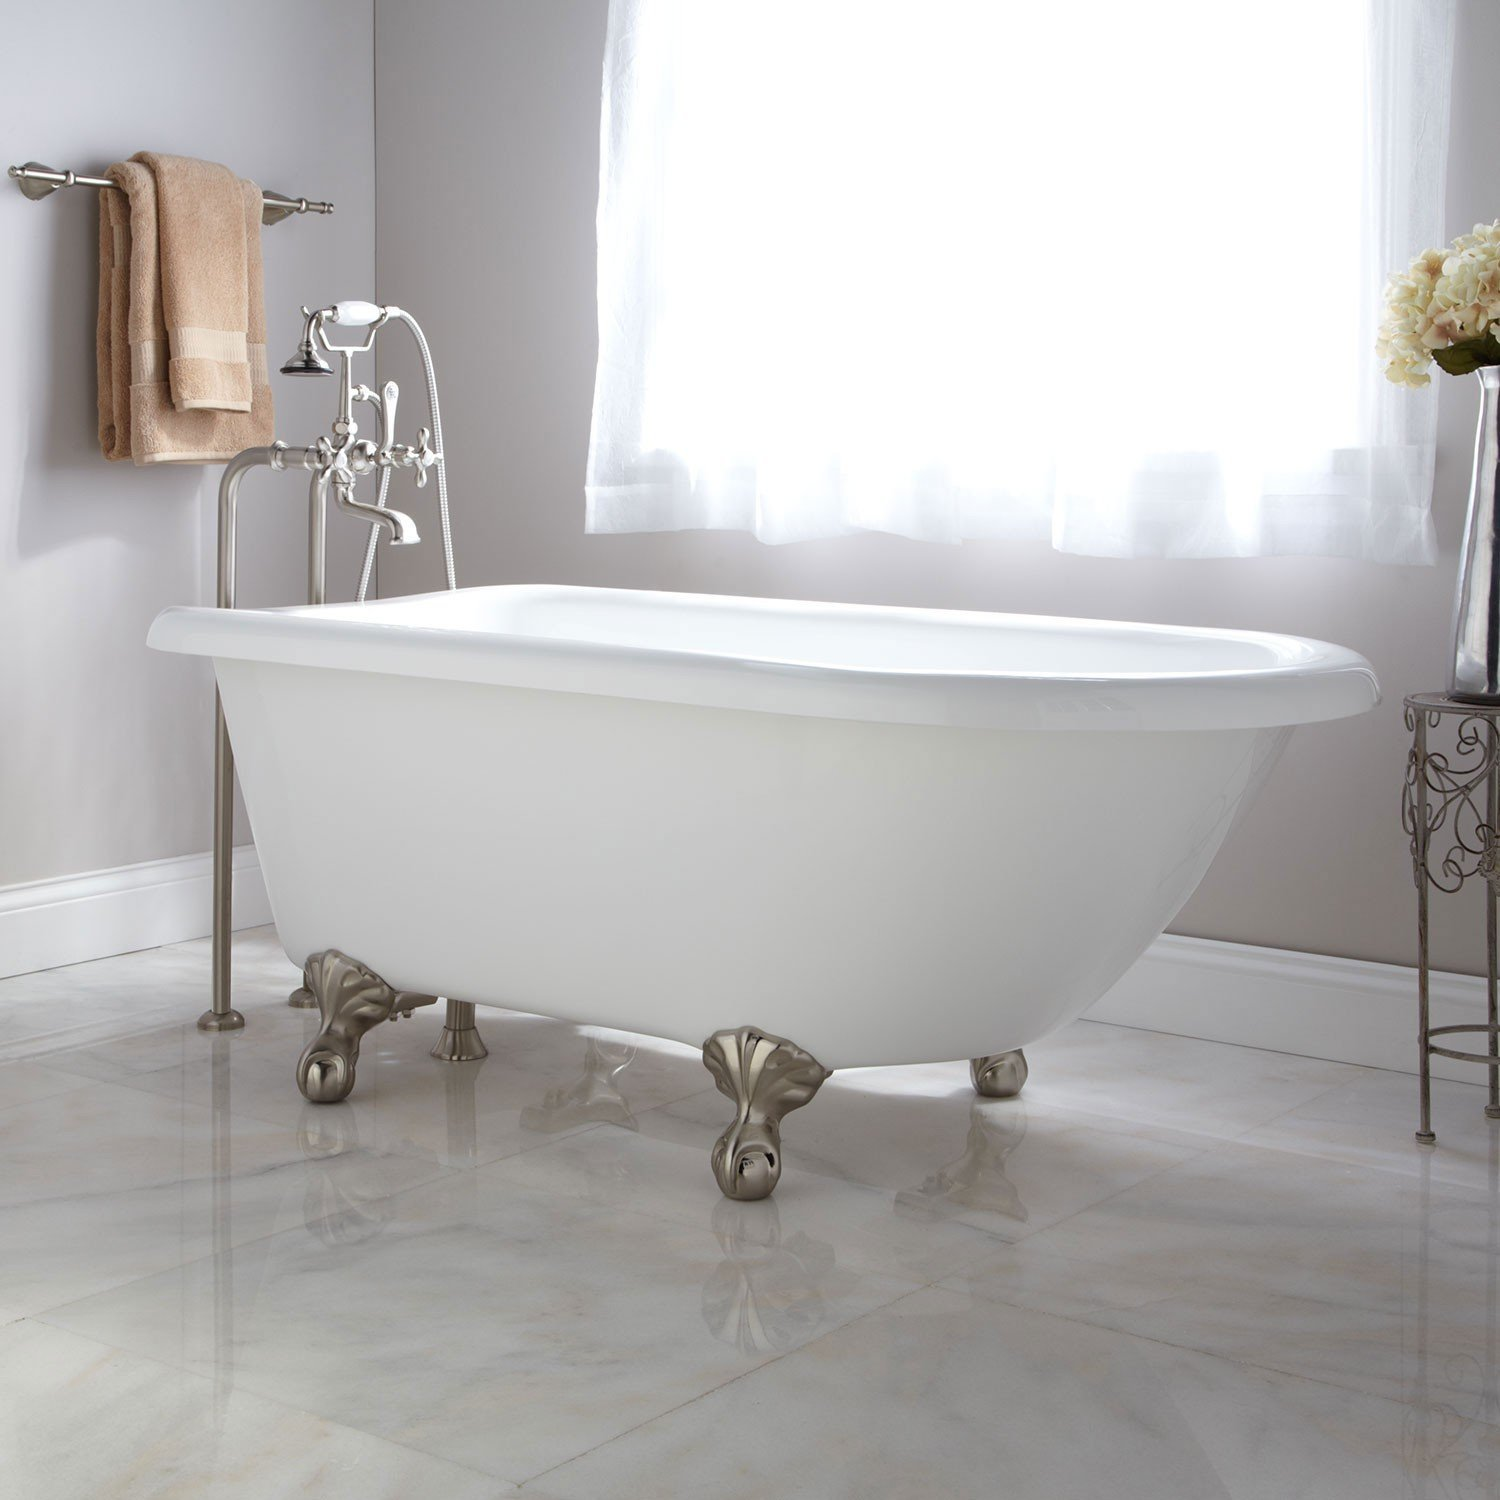 Naiture Acrylic Clawfoot Tub From Sh